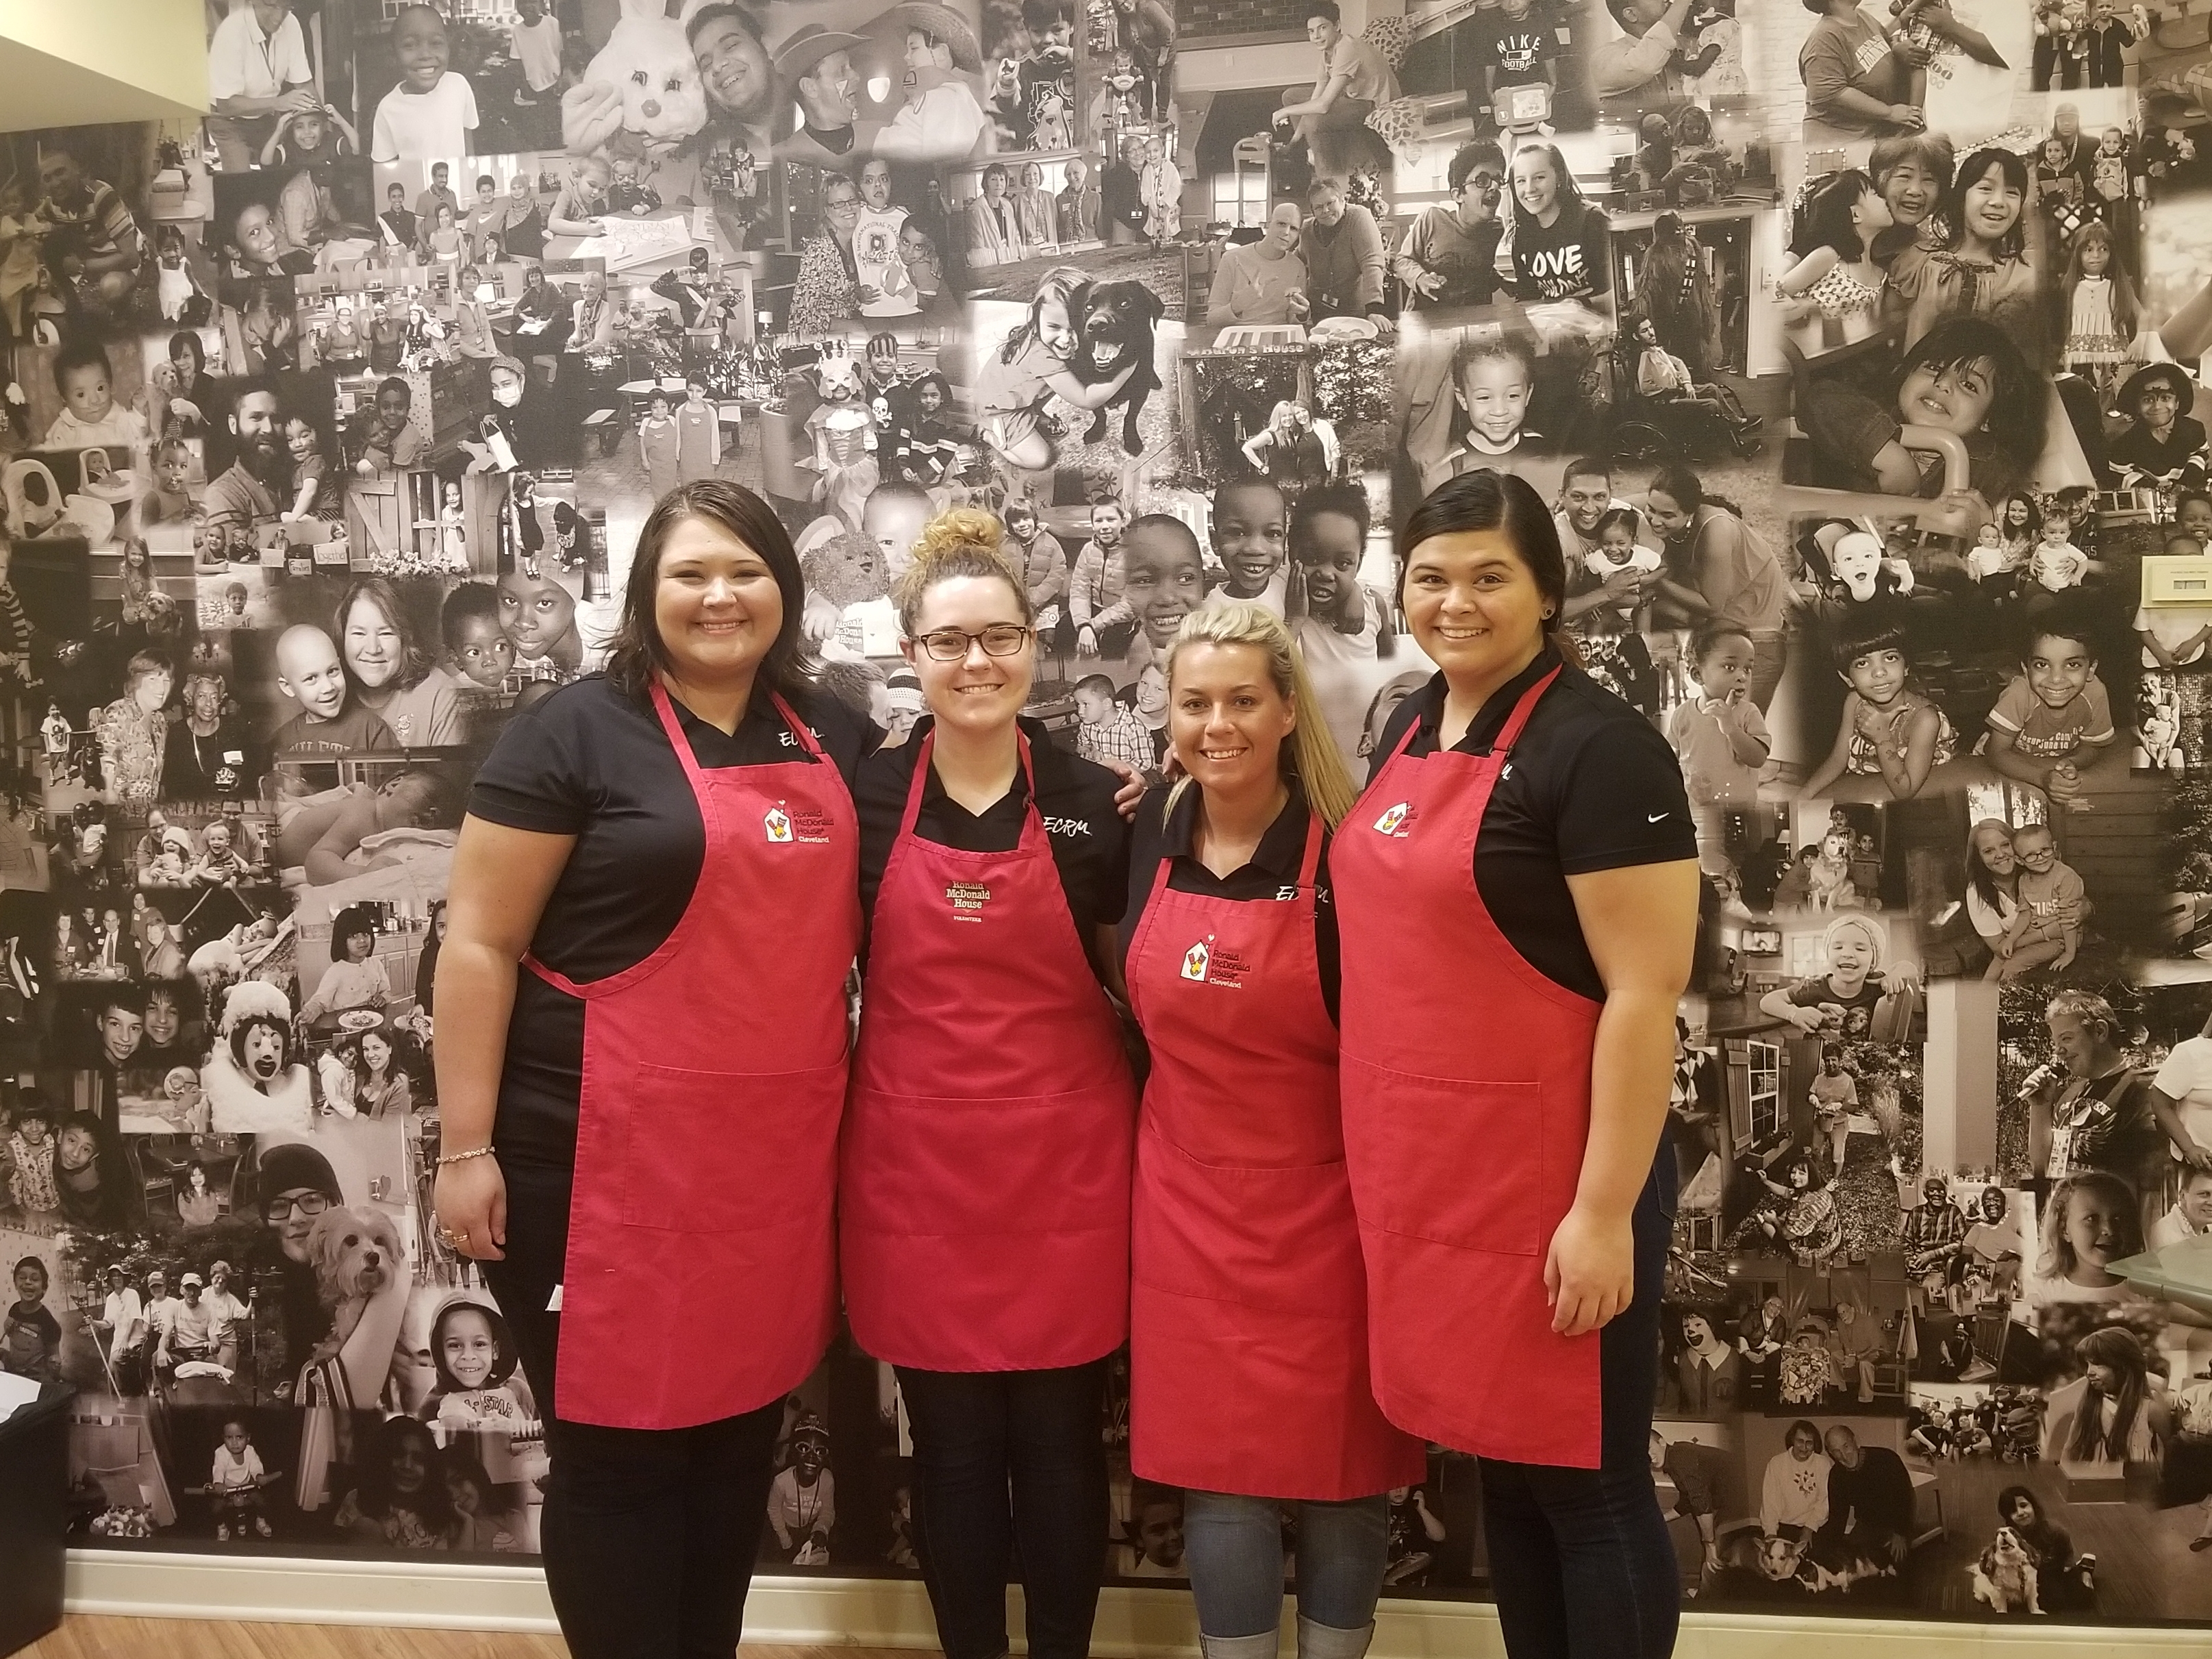 L to R: Ashley Newman, Katie Lehman, Mandi Booth, and Analita Voss at Ronald McDonald House